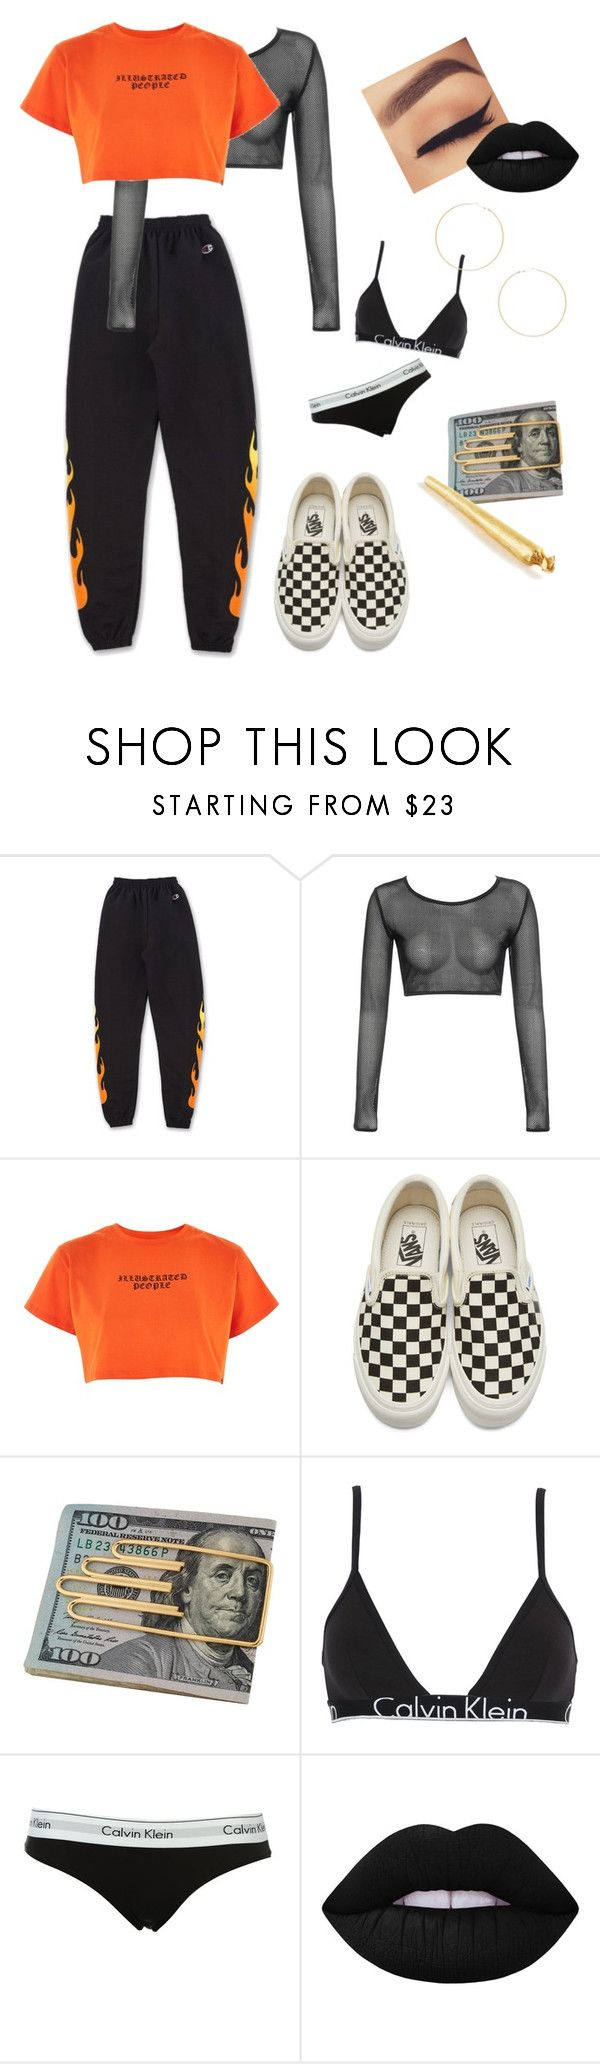 """playclothes"" by sroconor97 ❤ liked on Polyvore featuring Illustrated People, Vans, Cartier, Calvin Klein Underwear, Calvin Klein, Lime Crime and 8 Other Reasons"